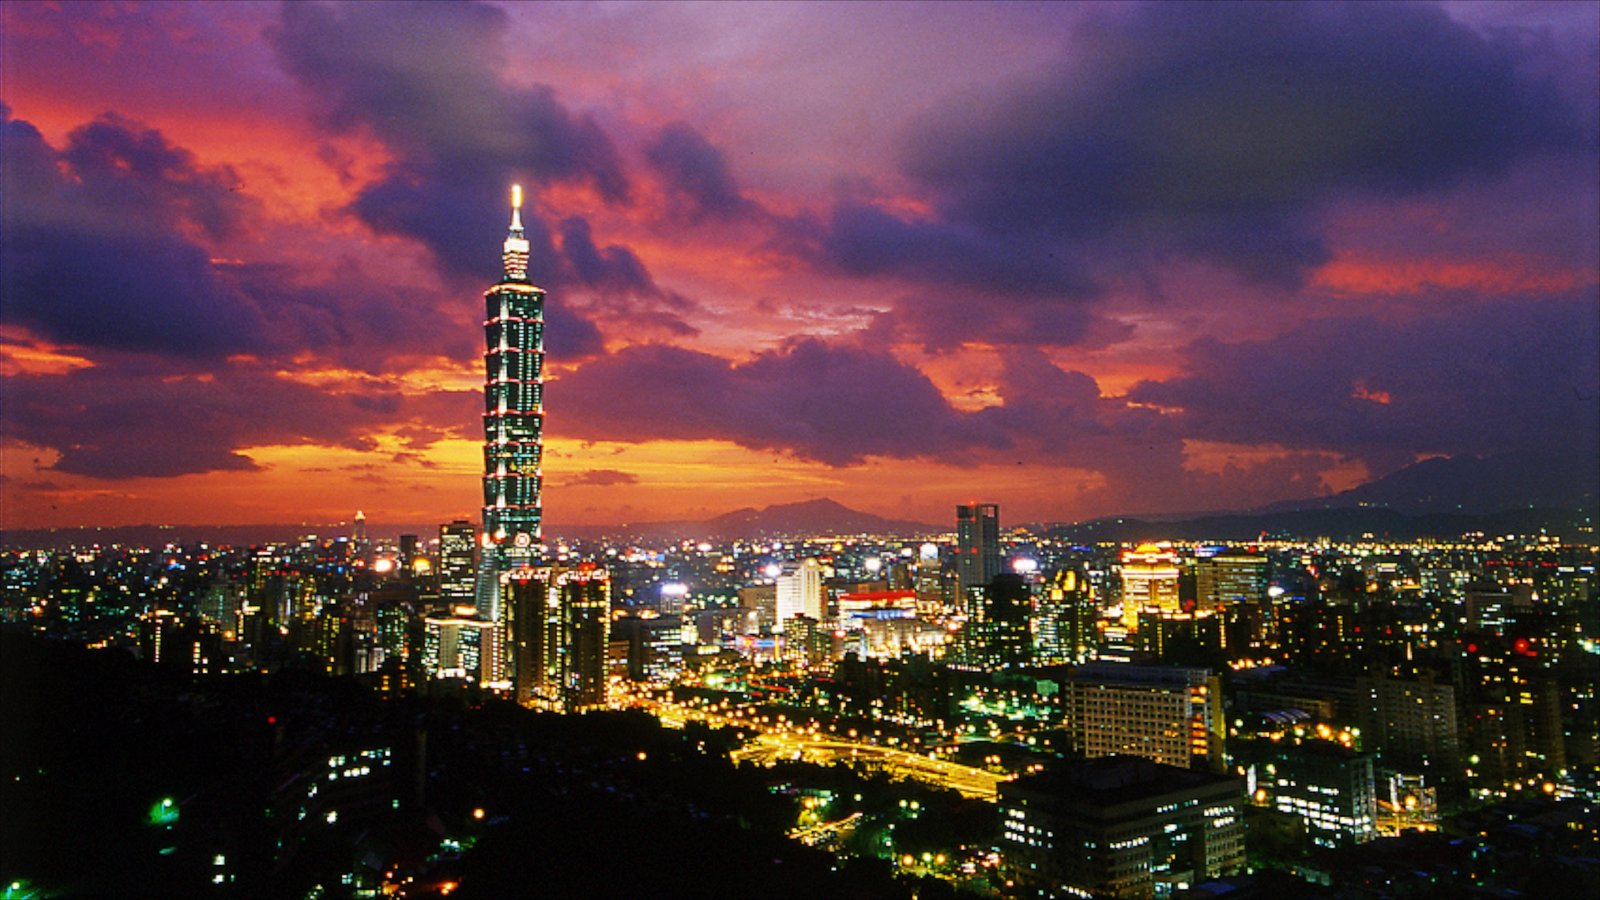 sunset & sunrise pictures: view images of taipei